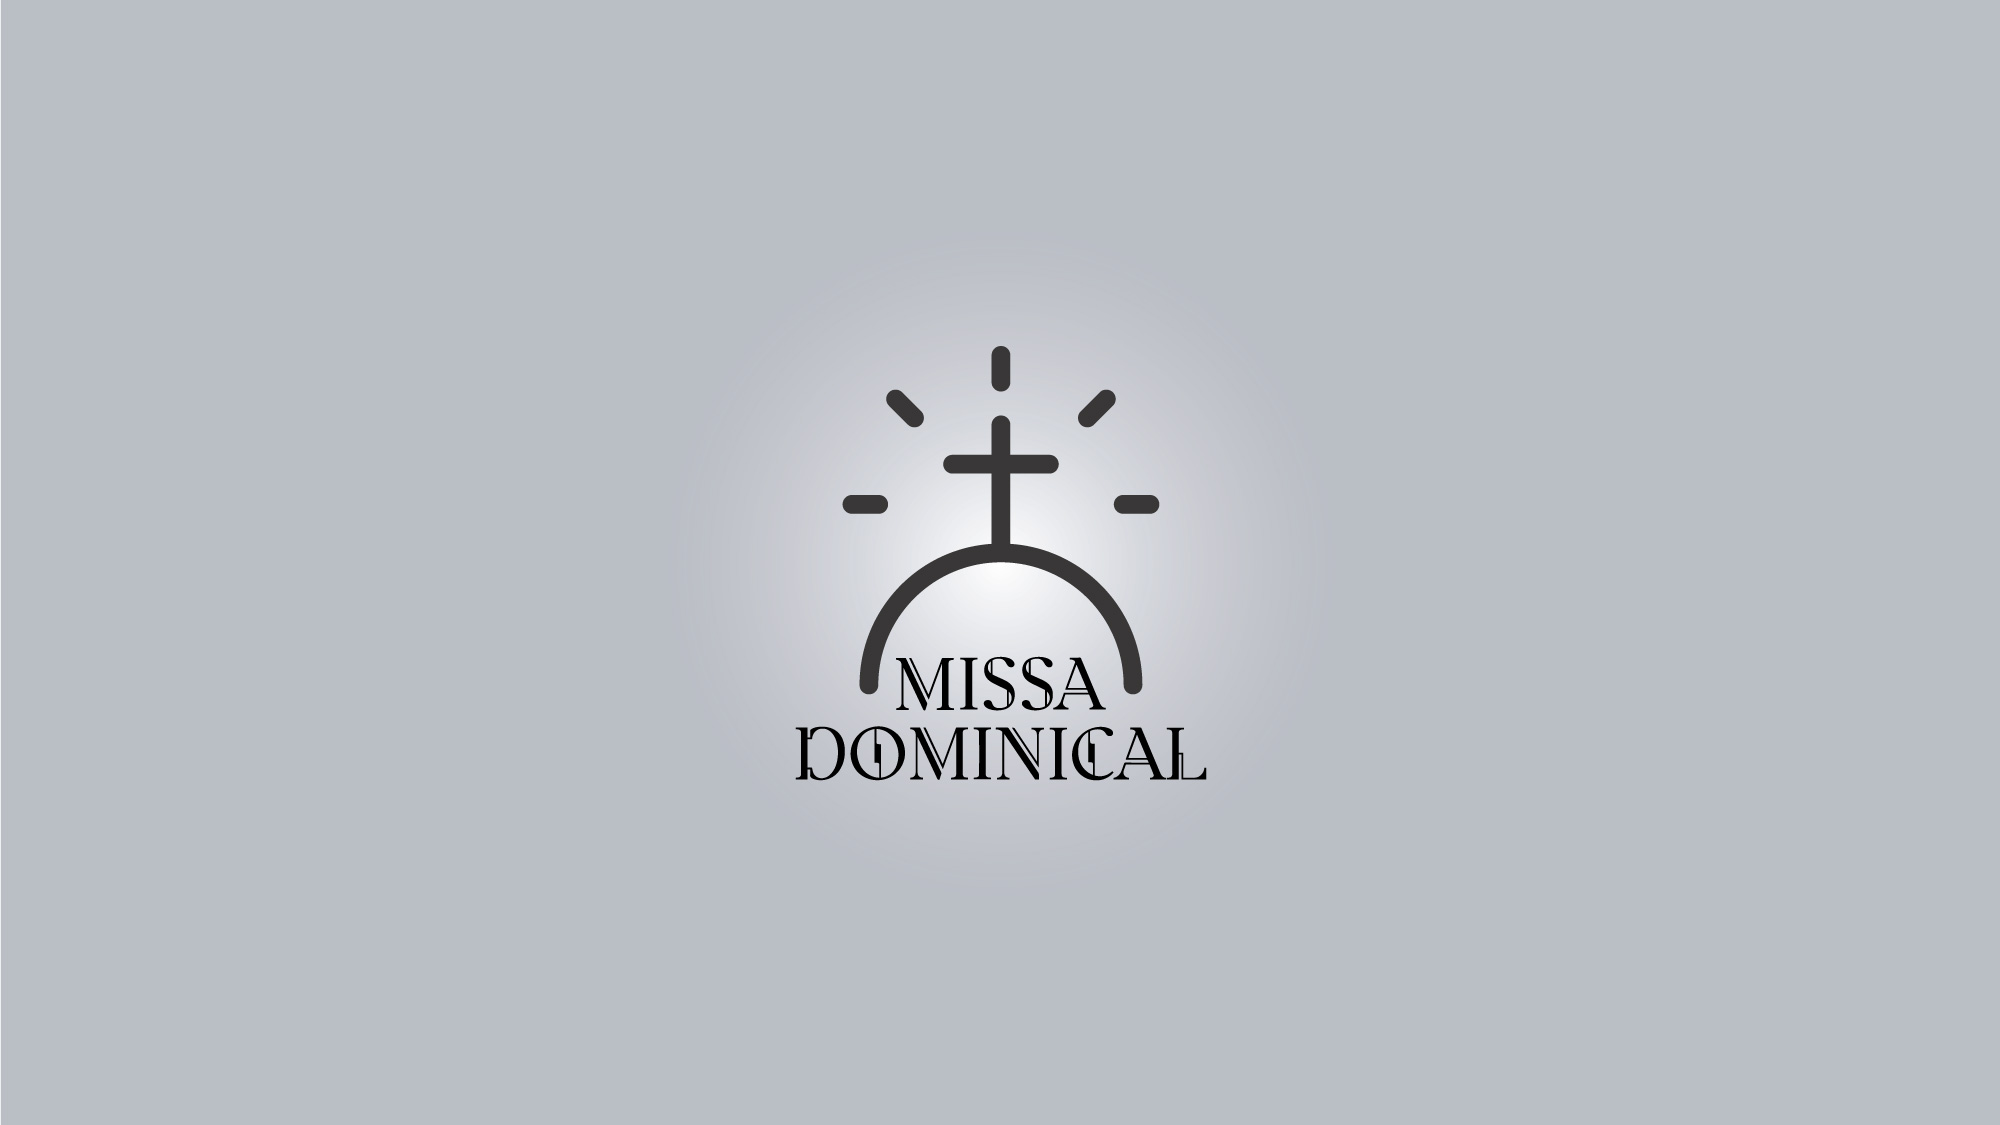 Missa Dominical